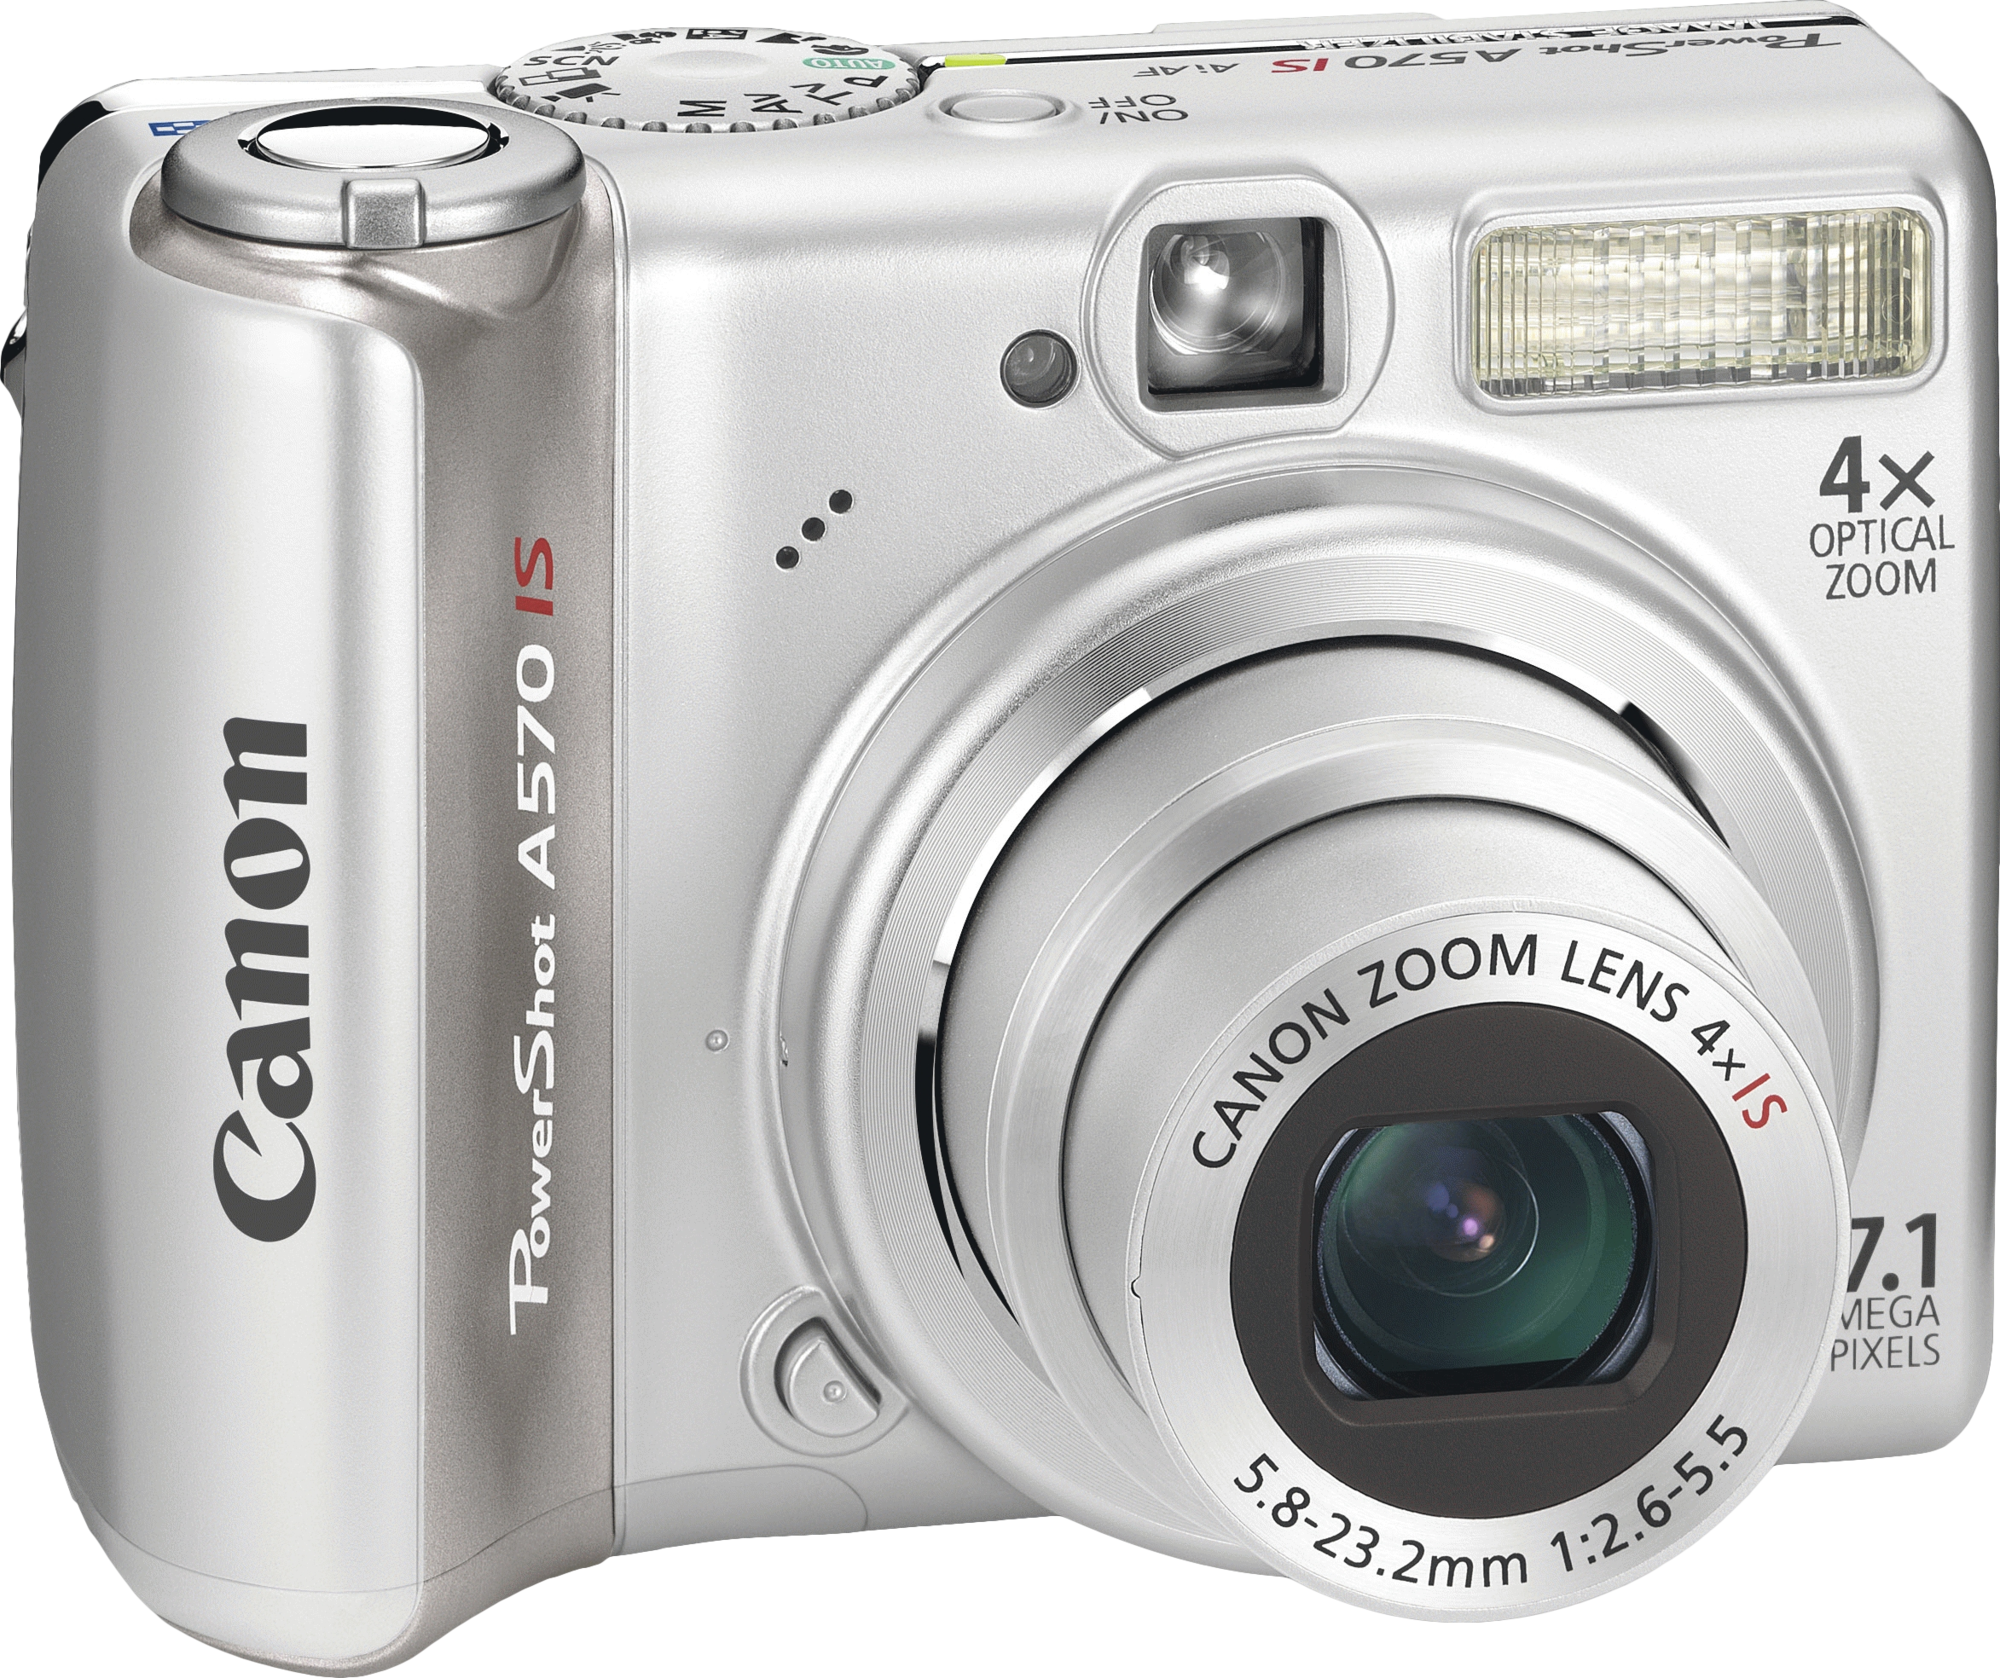 File:Canon powershot a570 is.jpg - Wikimedia Commons